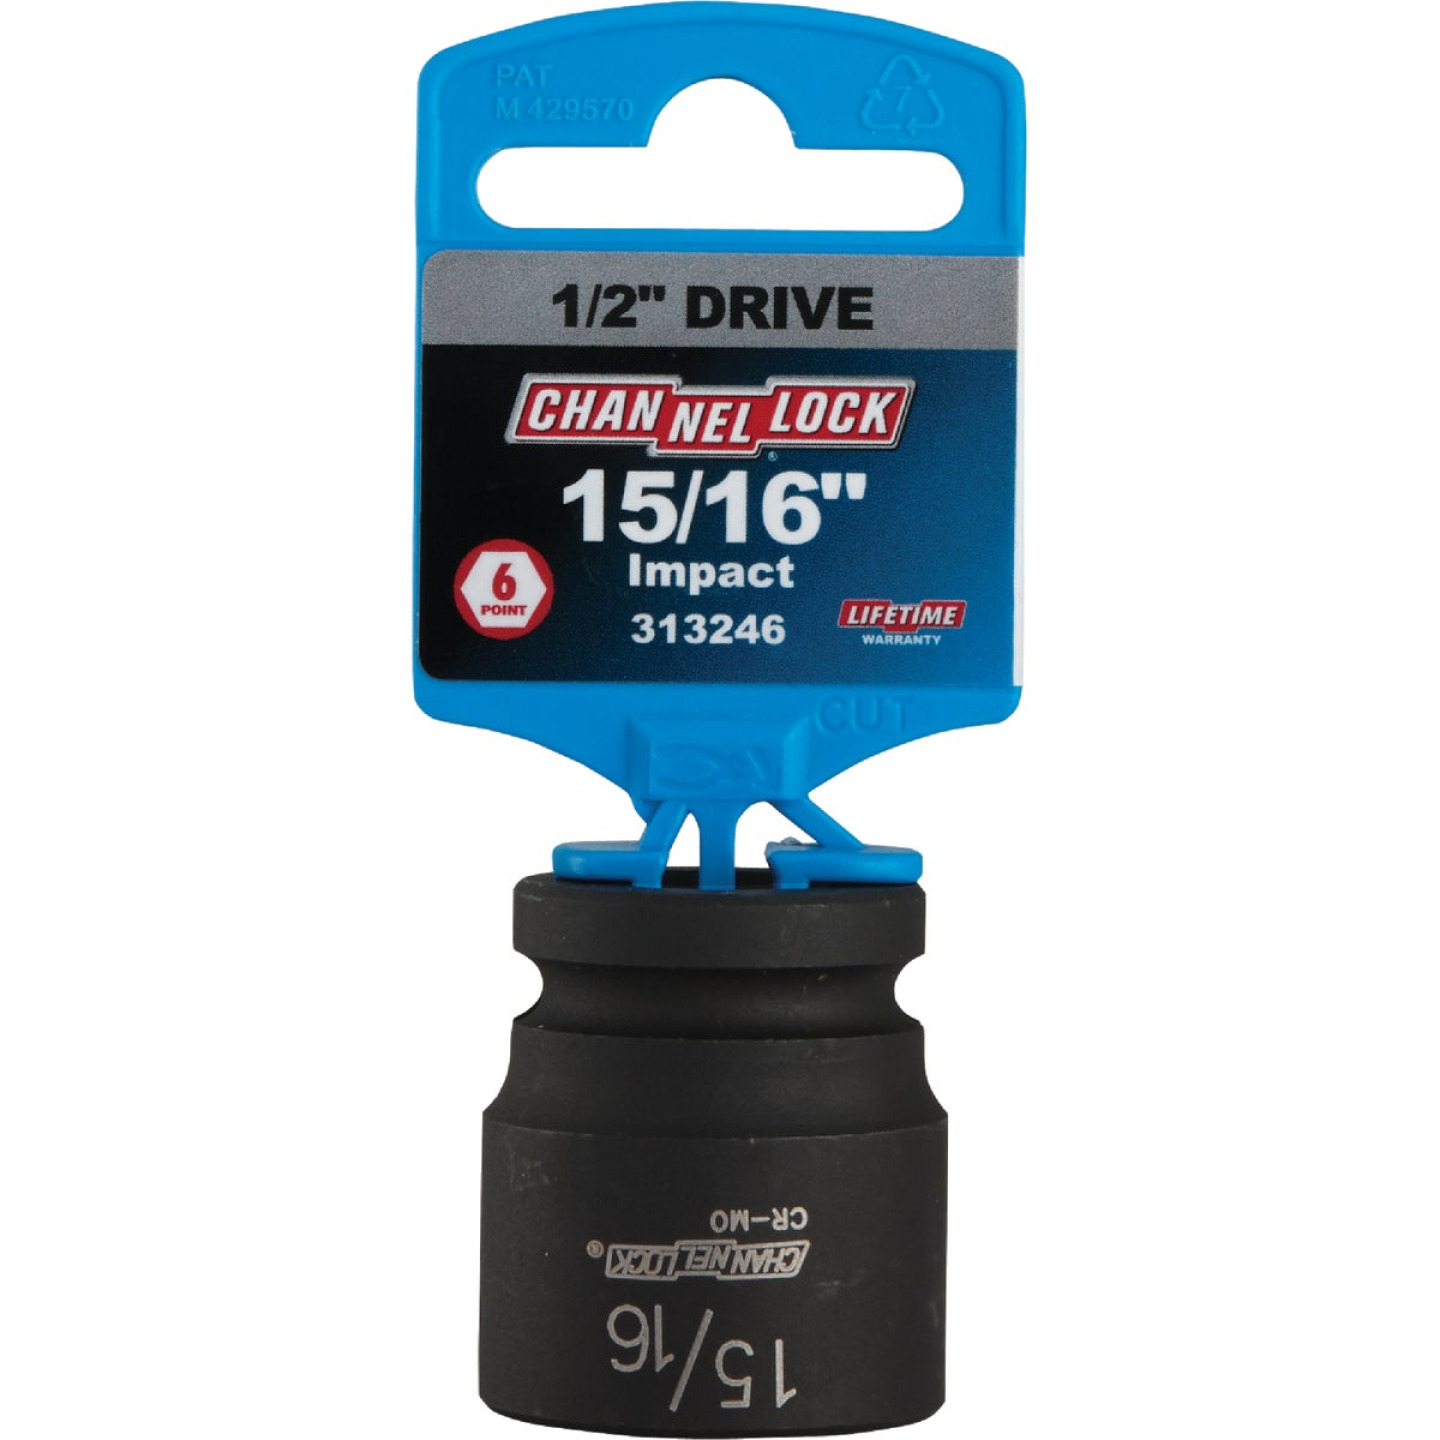 Channellock 1/2 In. Drive 15/16 In. 6-Point Shallow Standard Impact Socket Image 2